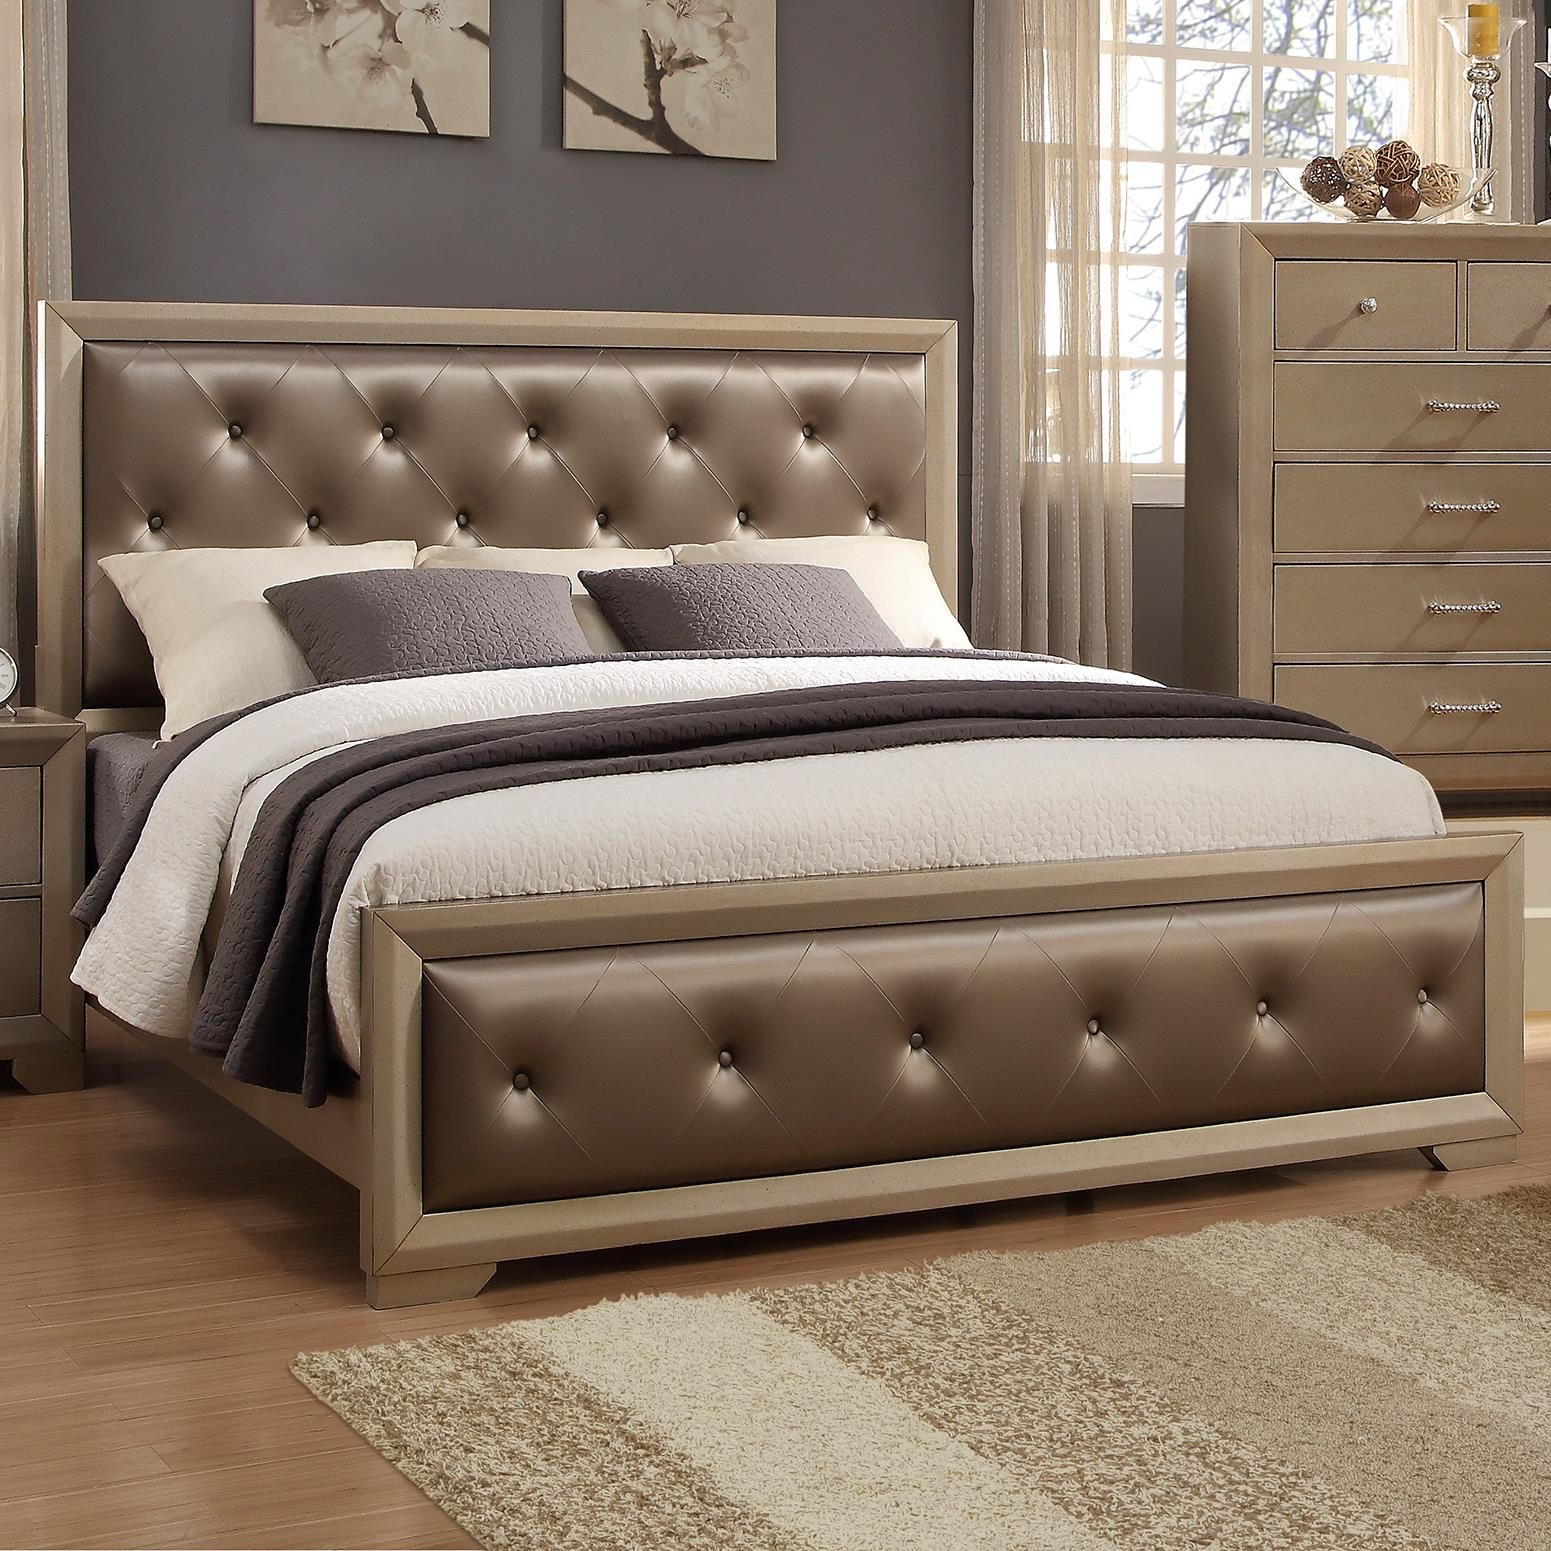 Fontaine California King Upholstered Bed With Golden Metallic Frame By Del Sol Cm King Bedroom